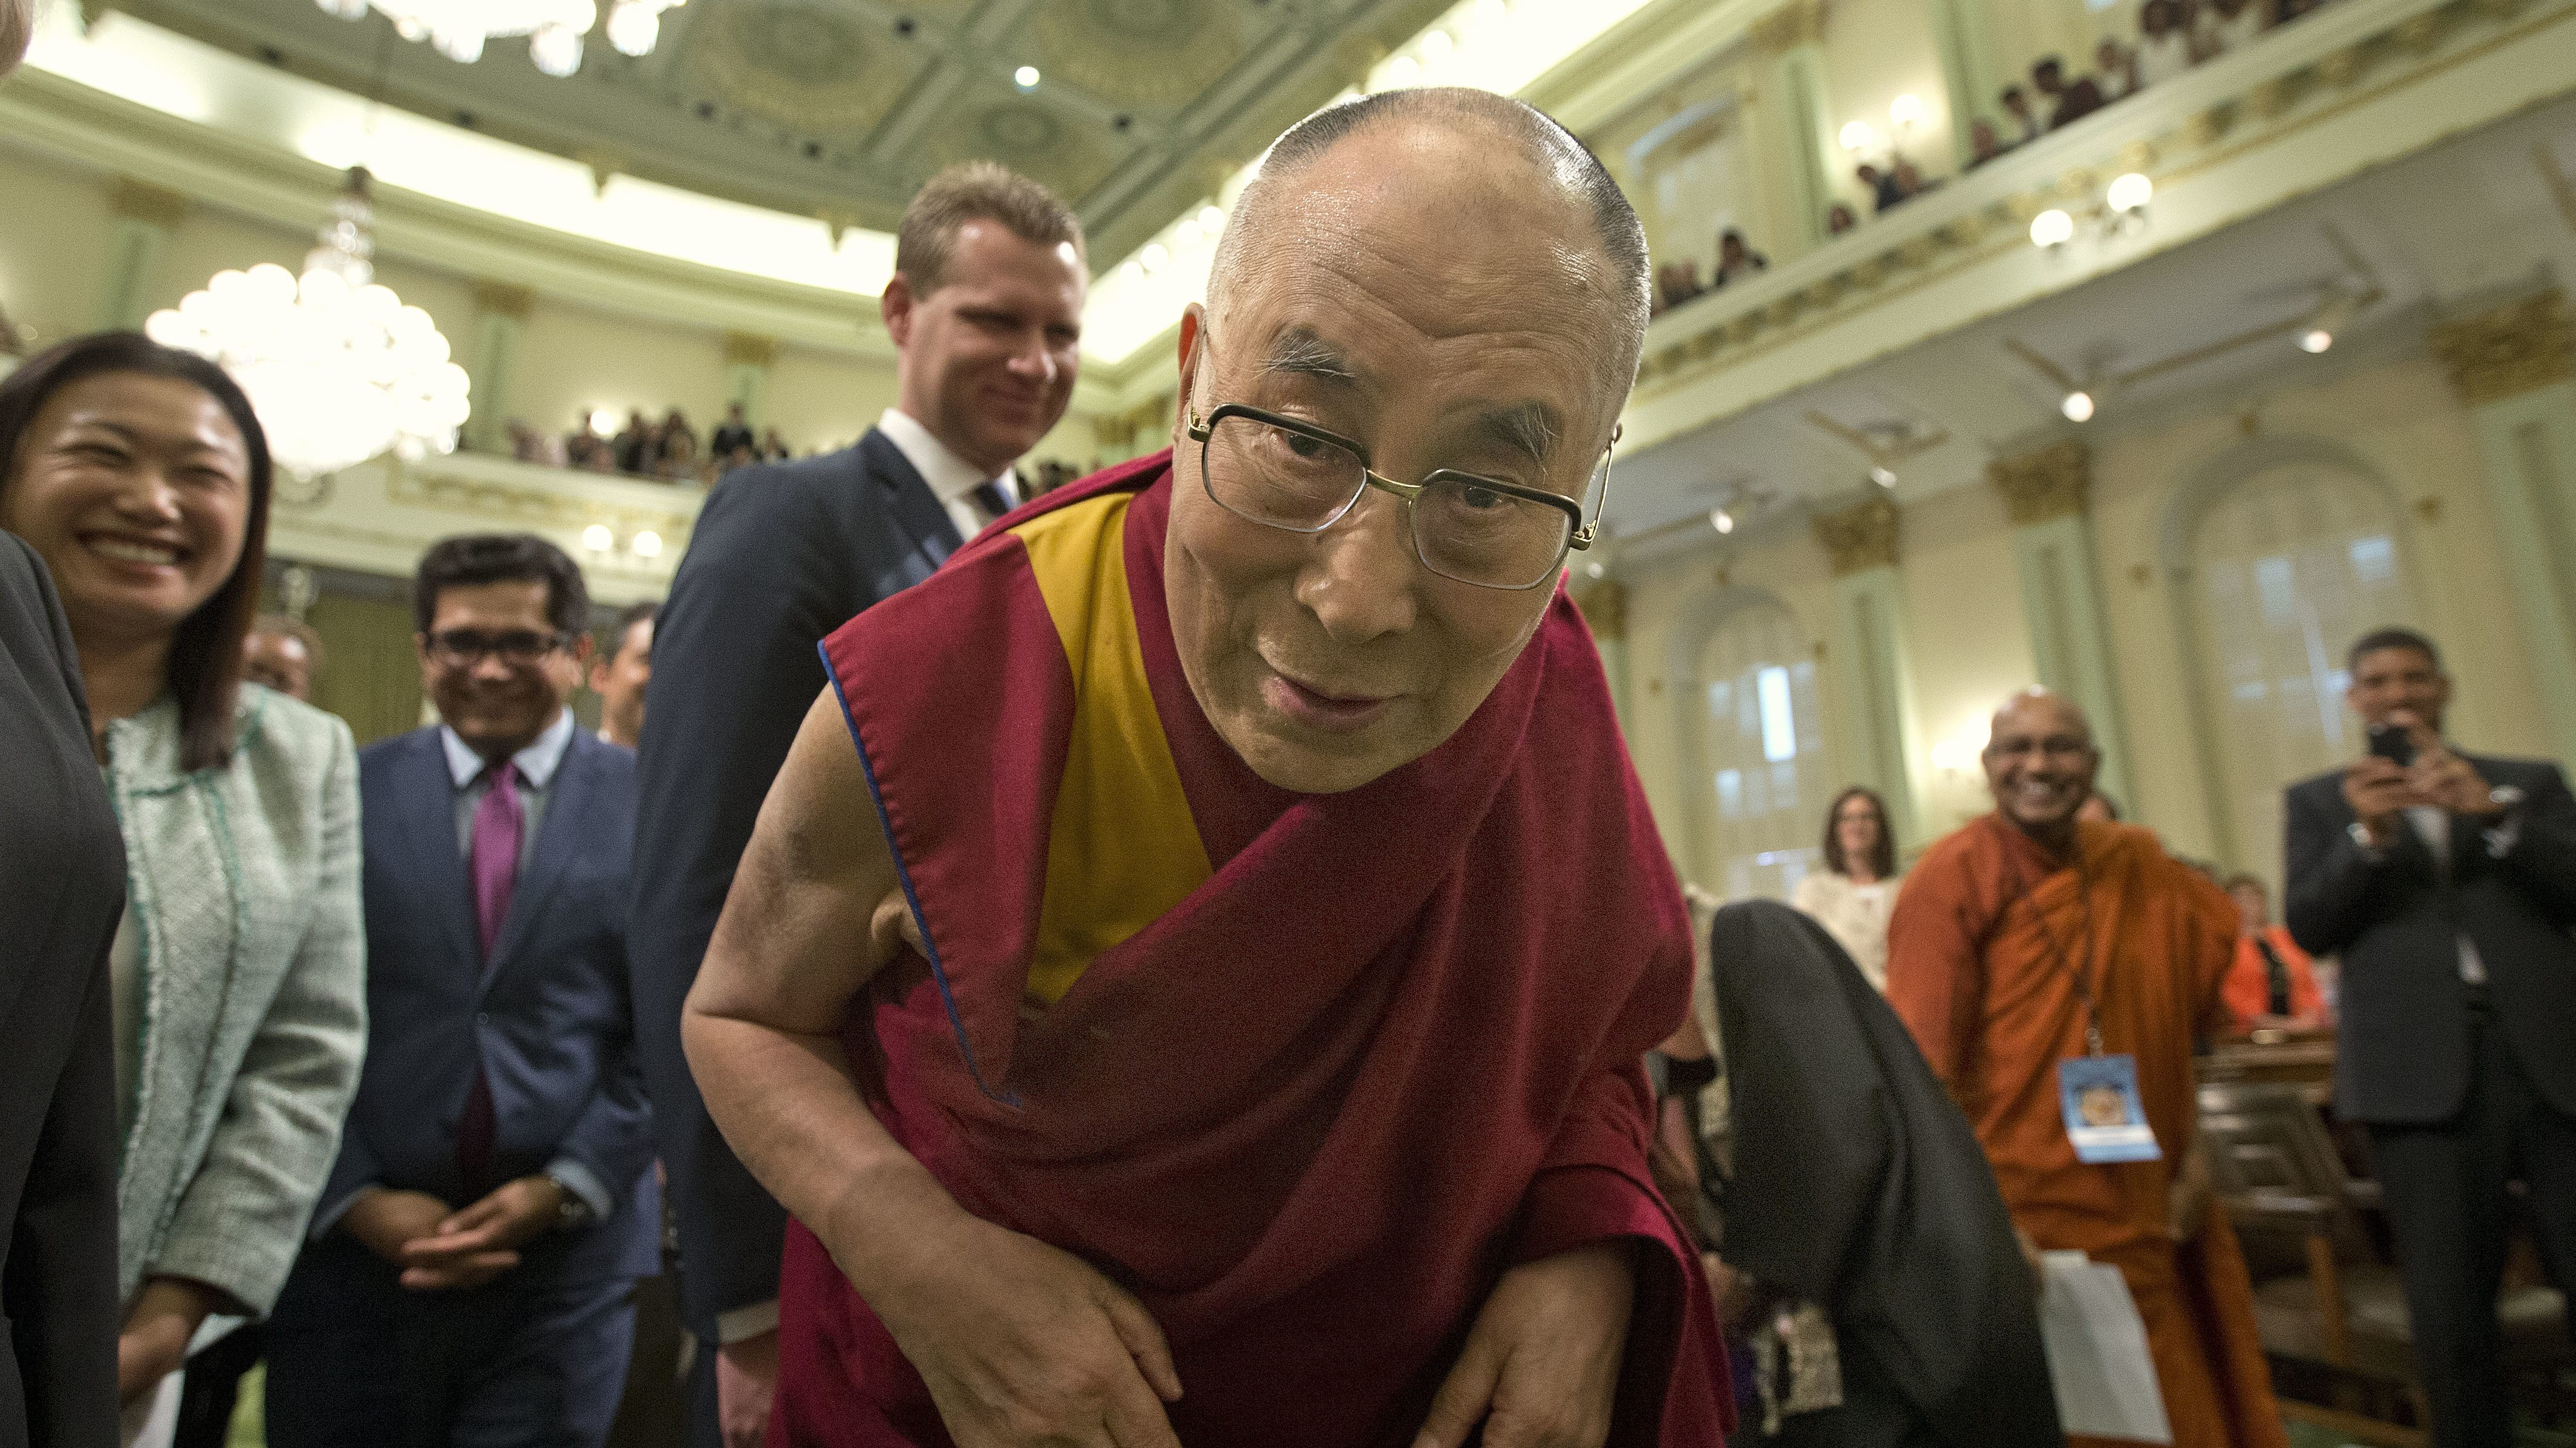 The Dalai Lama poses for a closeup as he enters the California Assembly Chambers to address a joint session of the California Legislature, Monday, June 20, 2016, in Sacramento, Calif. (AP Photo/Rich Pedroncelli)